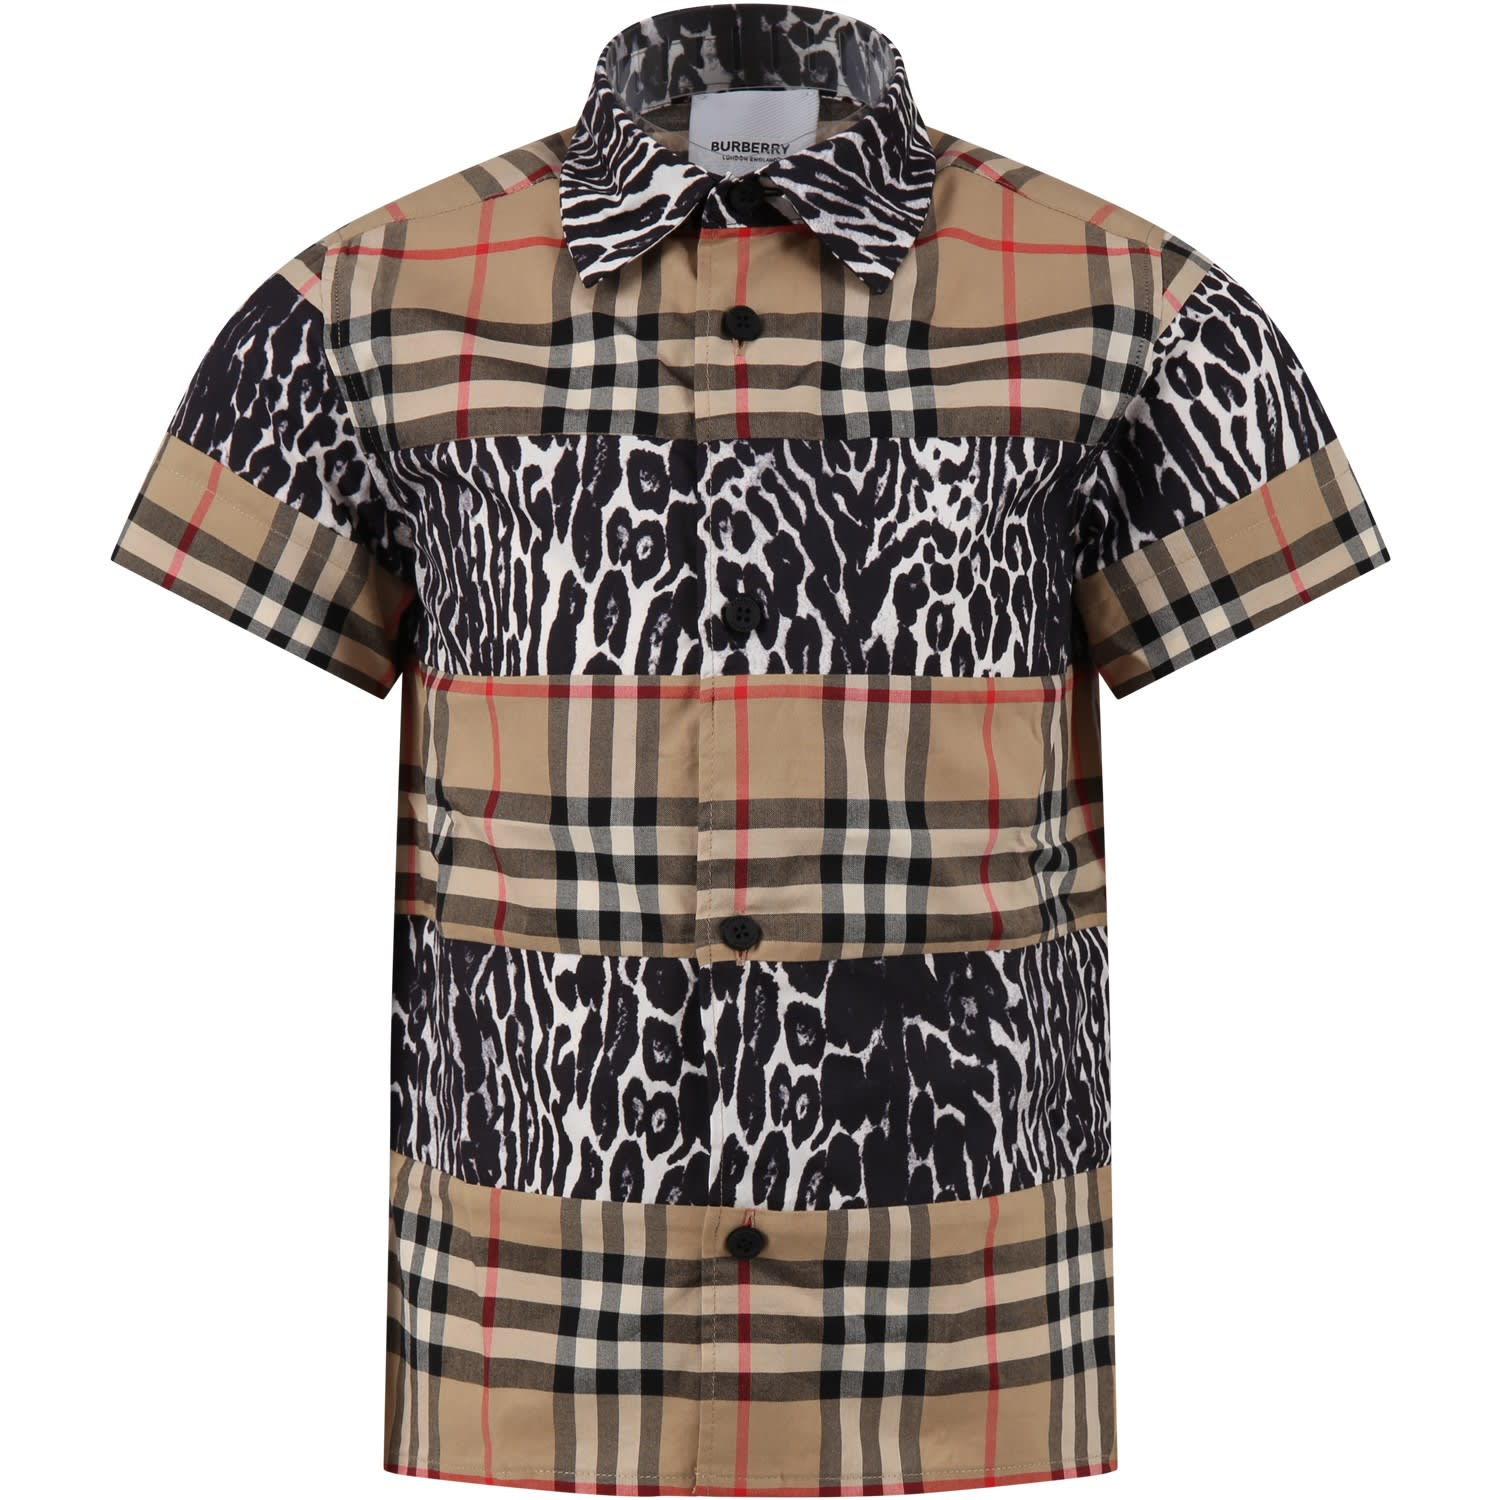 Burberry Kids' Beige Shirt For Boy With Vintage Checks